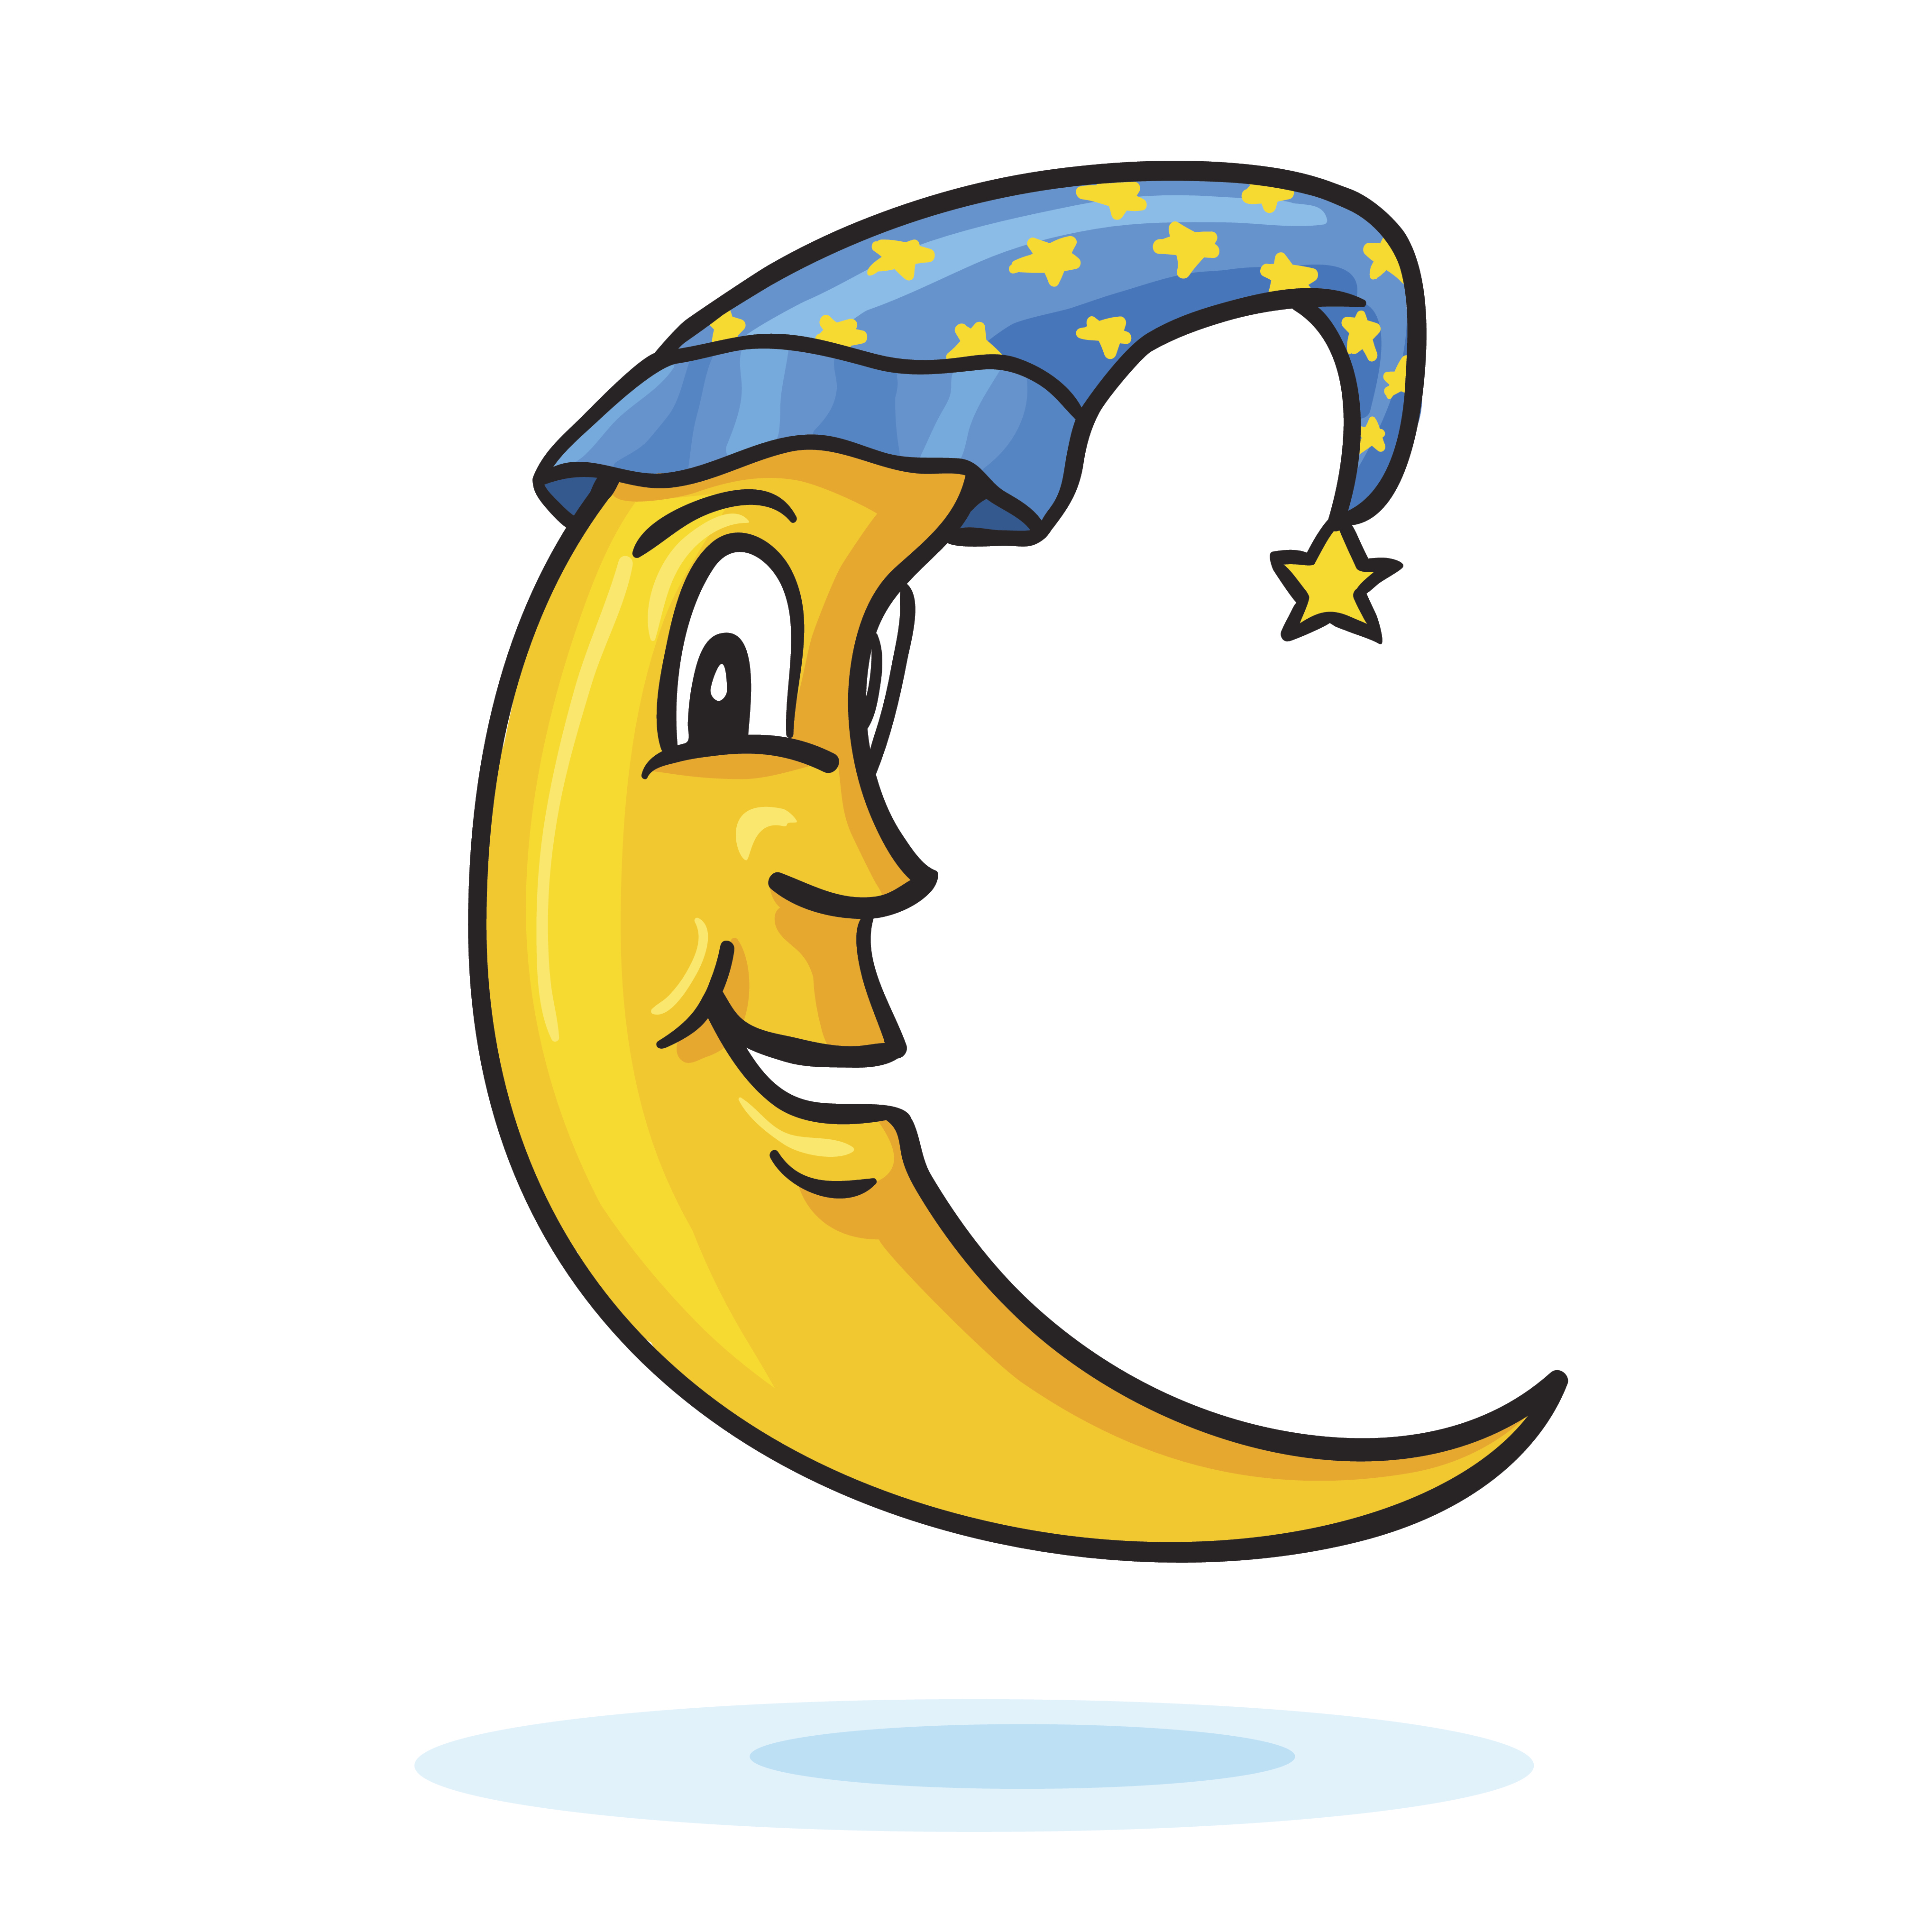 Drawing of the moon wearing a sleeping cap